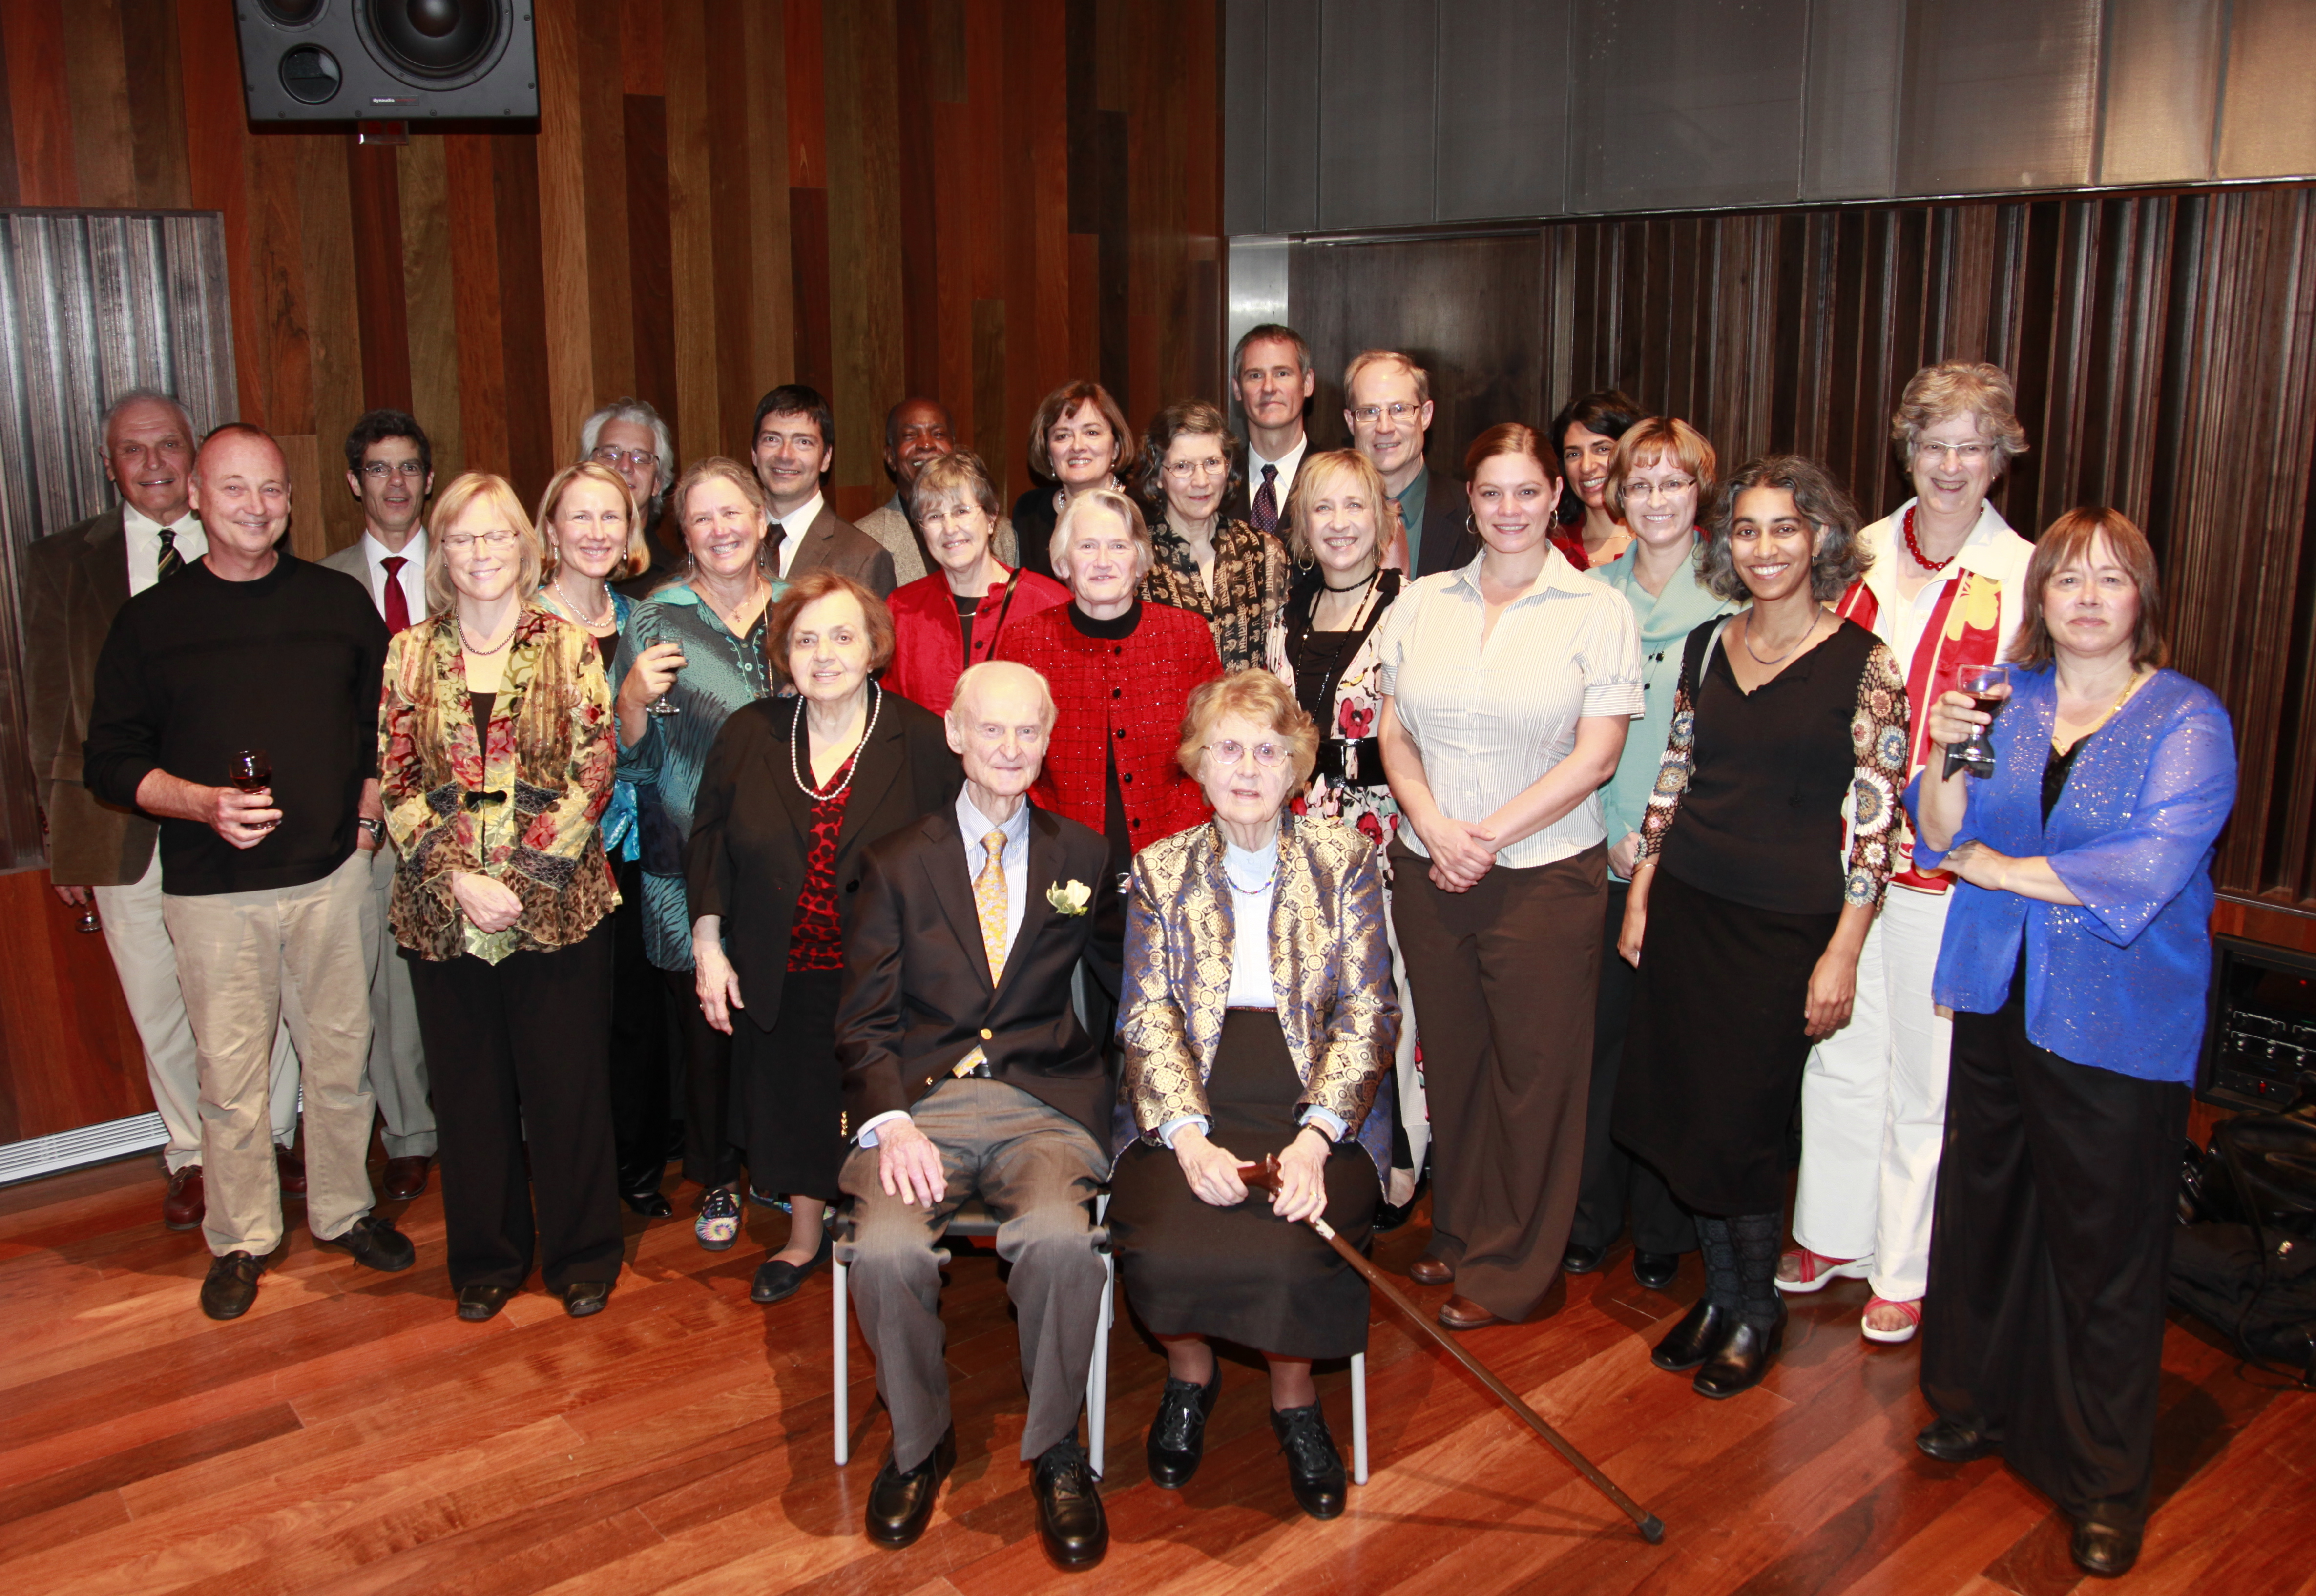 Robert Willoughby 90th birthday celebration photo